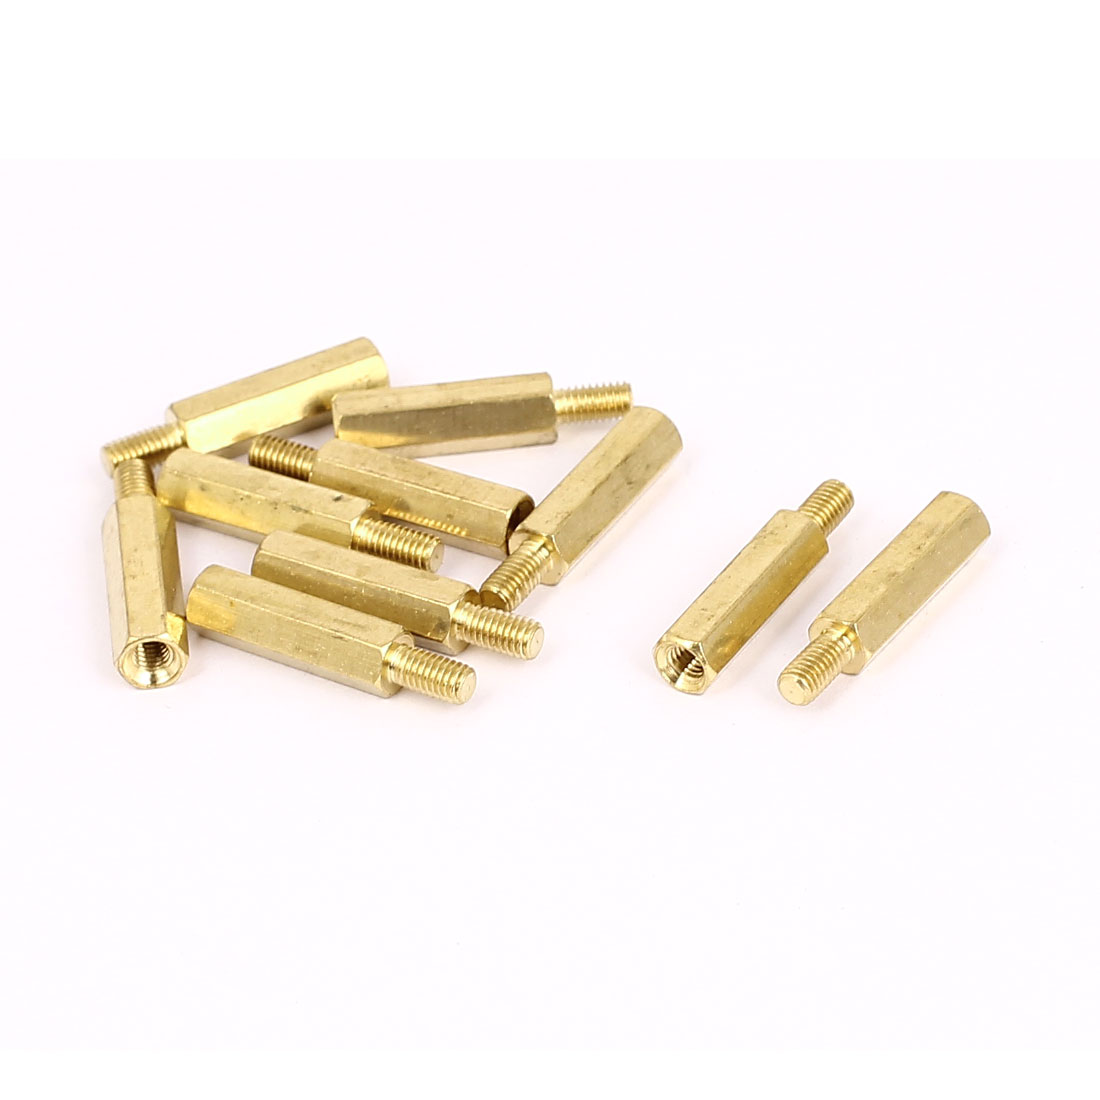 M3x16mm+6mm Male to Female Thread 0.5mm Pitch Brass Hex Standoff Spacer 10Pcs